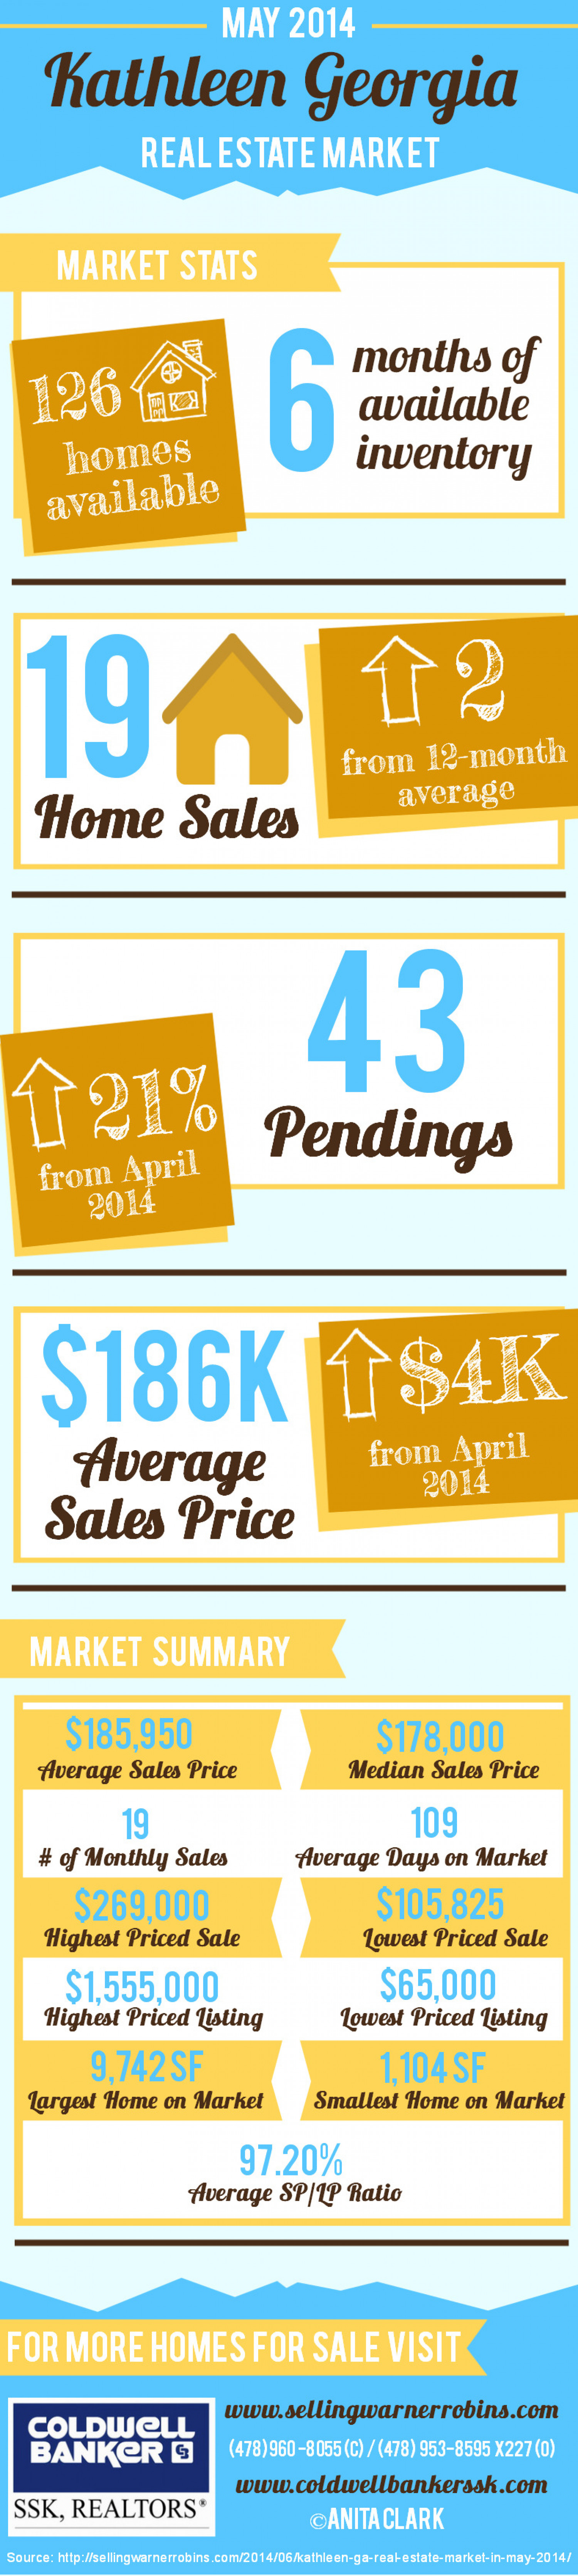 Kathleen GA Real Estate Market in May 2014 Infographic